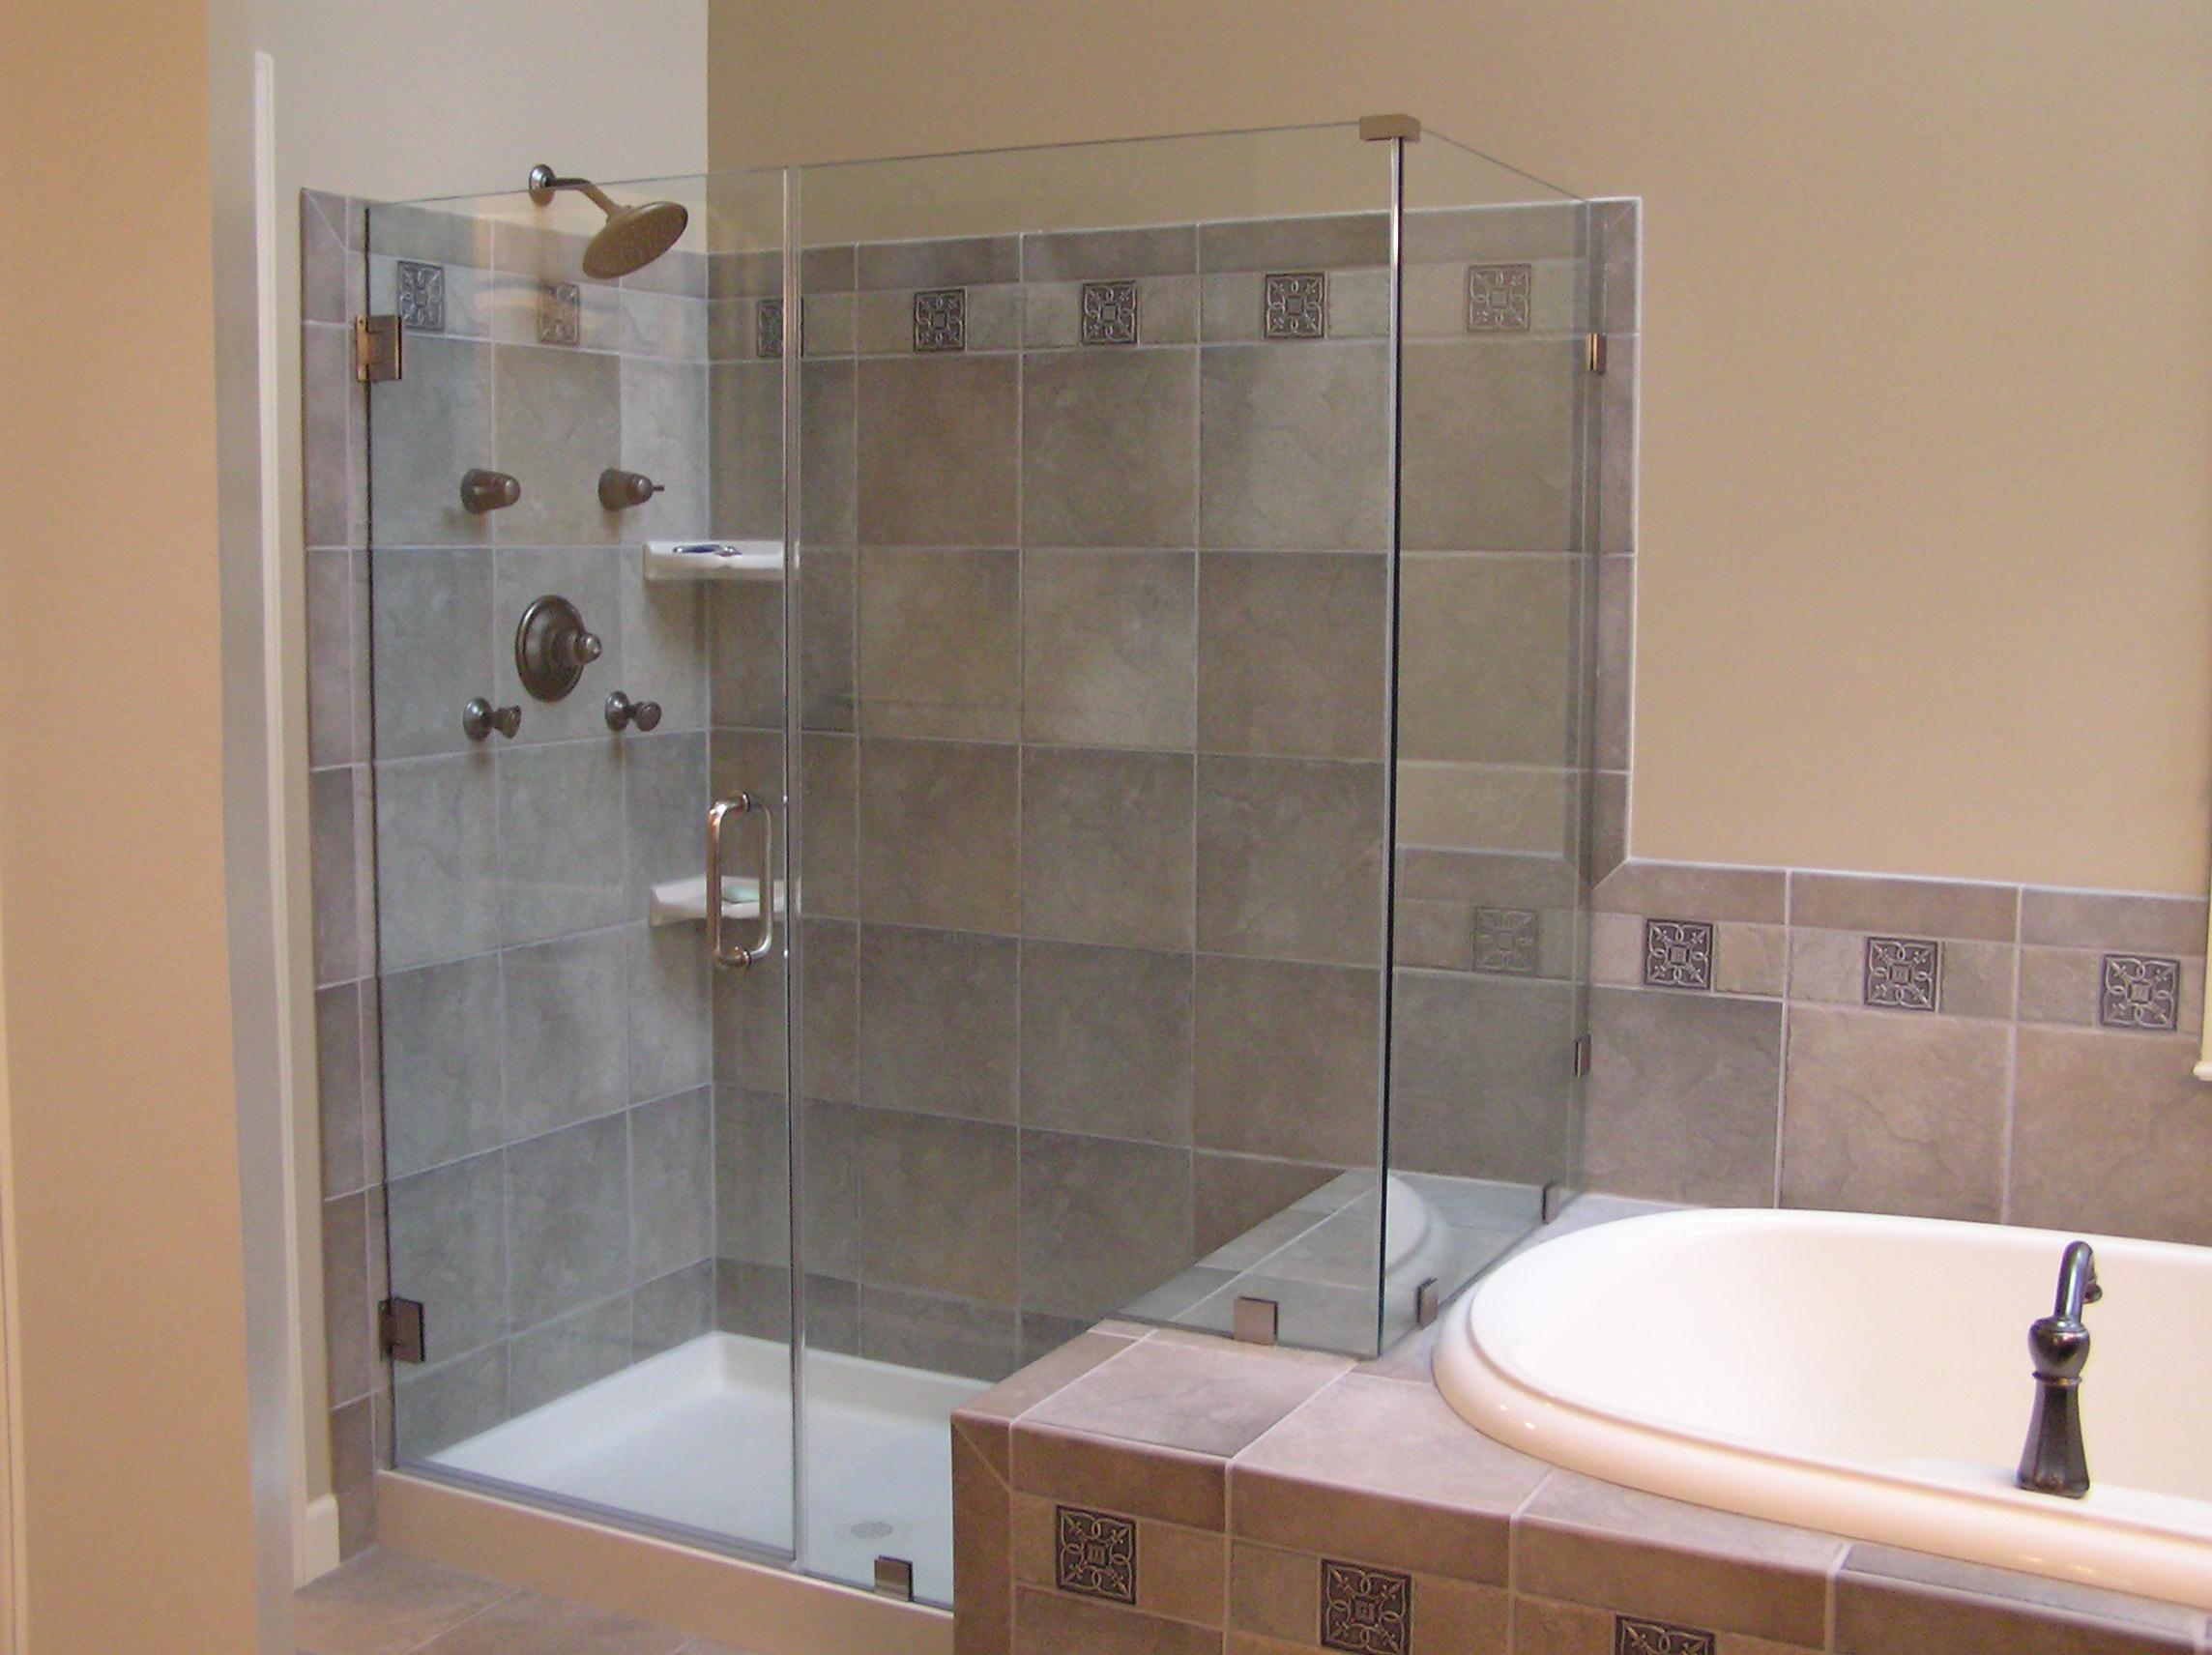 Bathroom Remodel Delaware Home Improvement Contractors - How much is it to remodel a bathroom